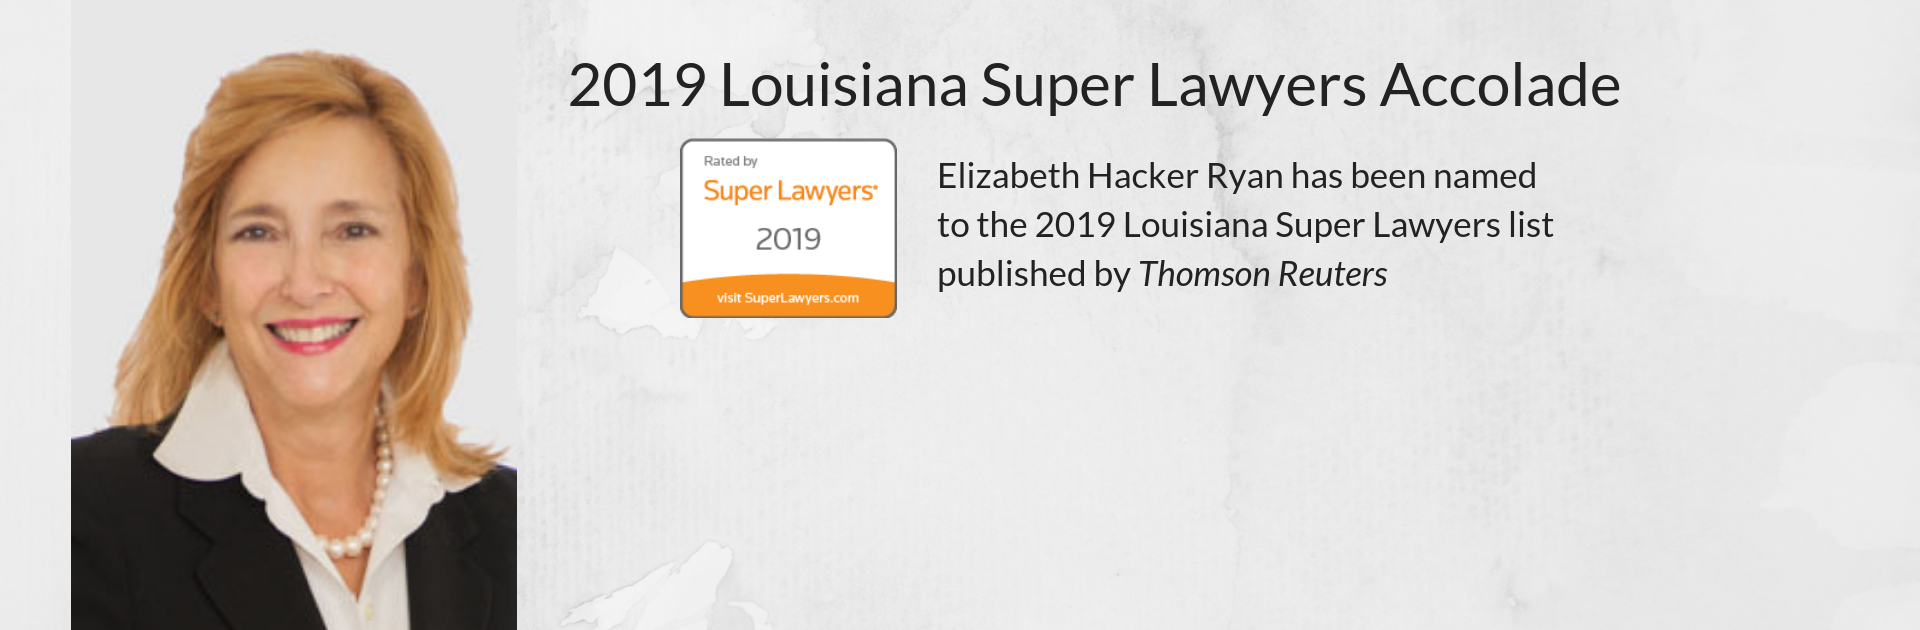 Coats Rose Attorney Makes the 2019 Louisiana Super Lawyers List Published by Thomson Reuters